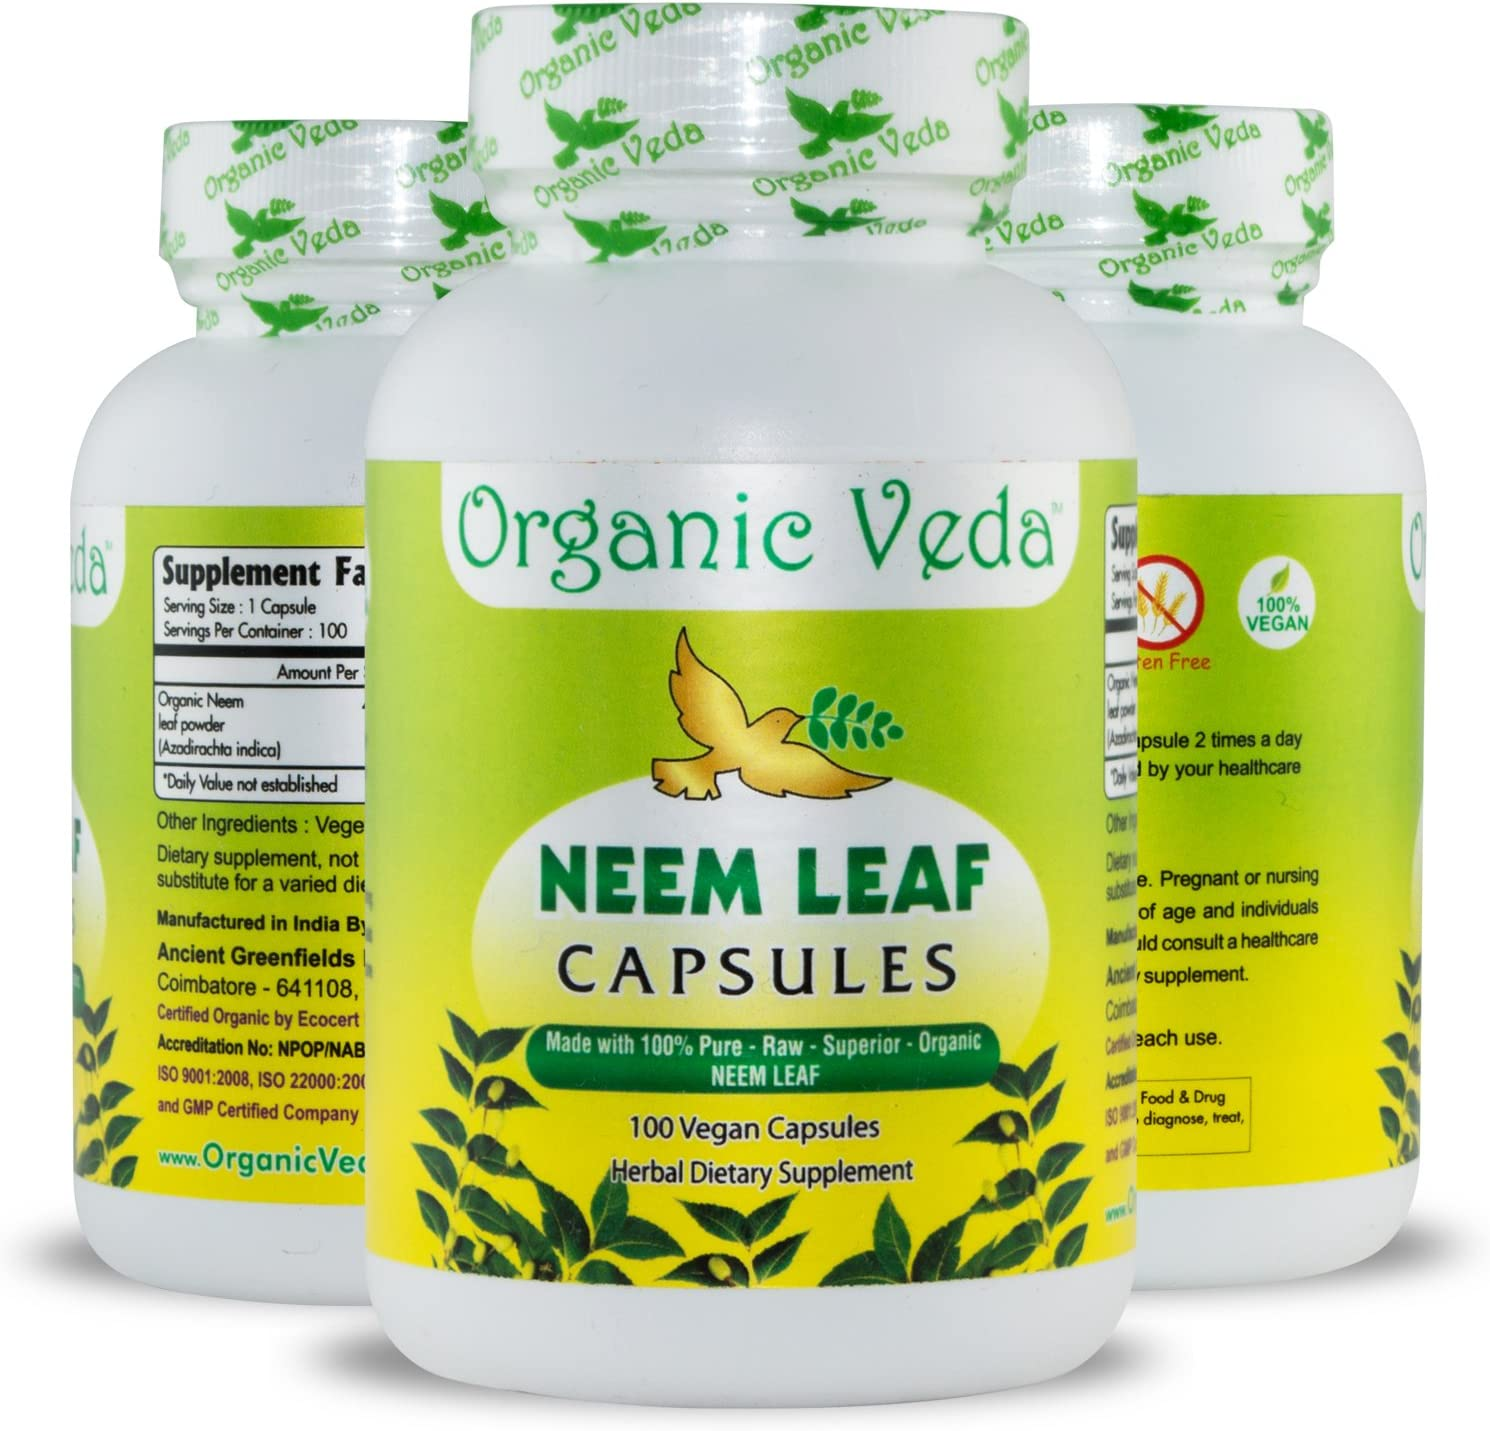 Organic Neem Leaf Powder 100 Veg Capsules. 100% Pure and Natural Raw Herb Super Food Supplement. Non GMO, Gluten FREE. US FDA Registered Facility. Kosher Certified Vegetarian Capsule. All Natural!: Health & Personal Care